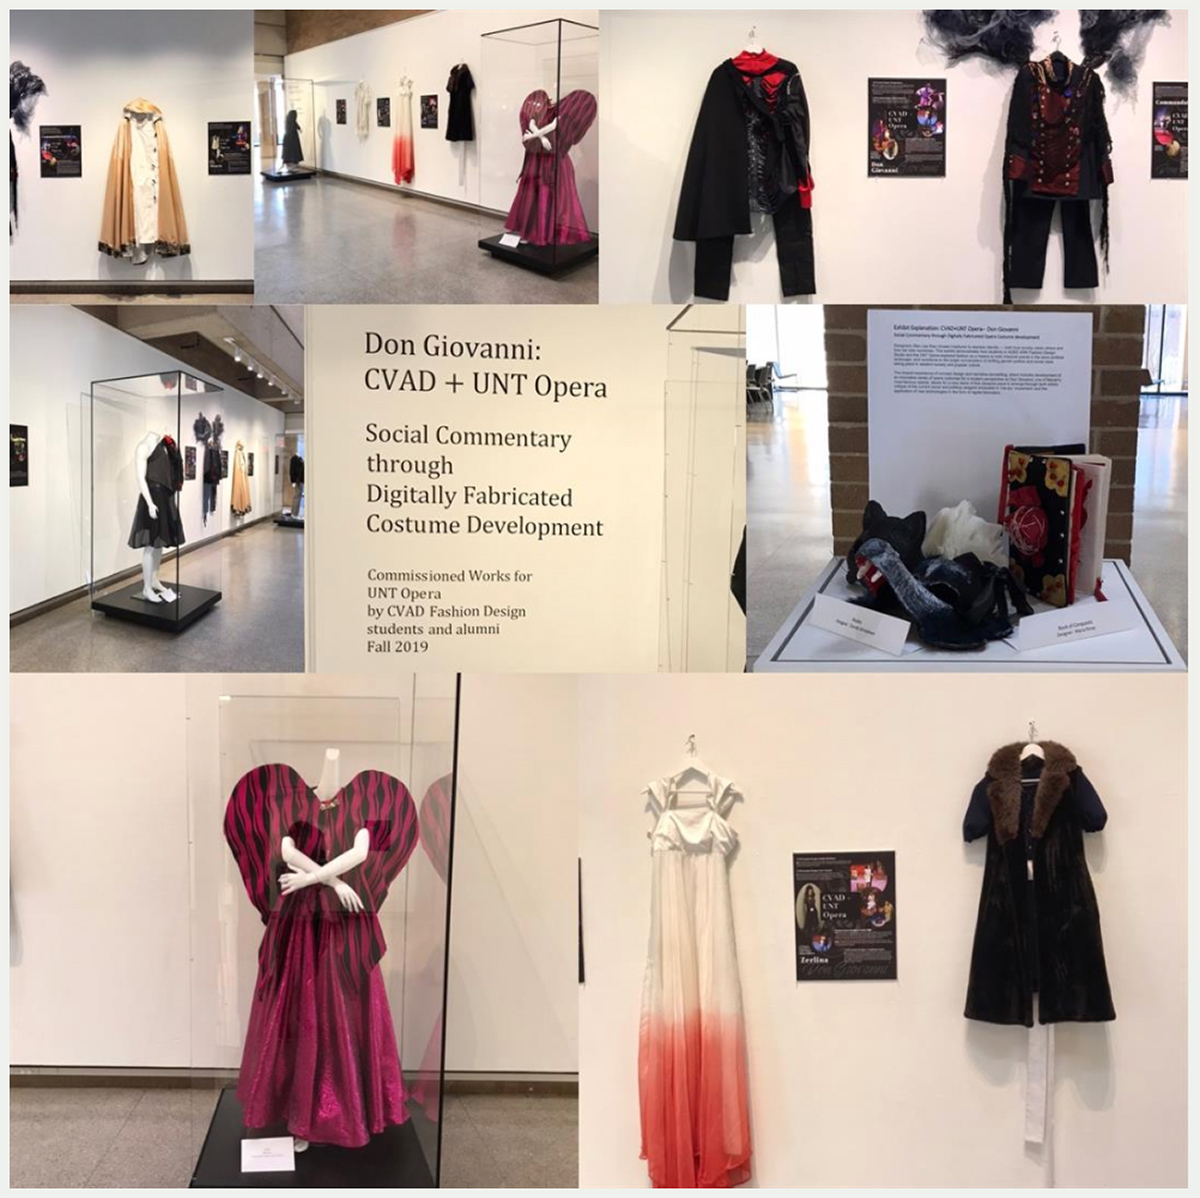 Photo collage of UNT Opera costumes on display created by the CVAD Fashion Design class